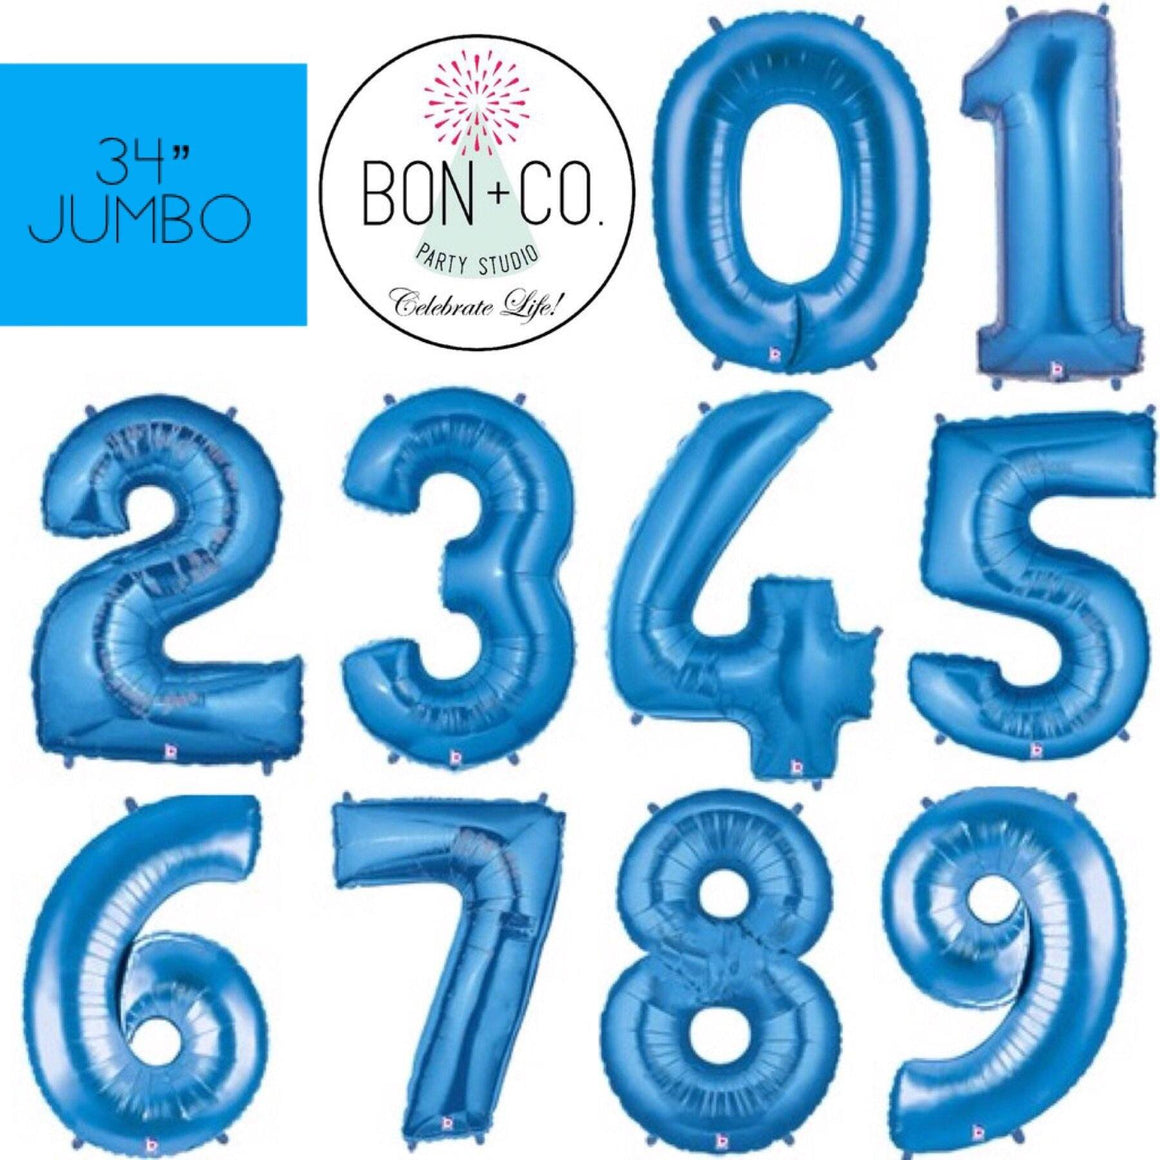 "BALLOON BAR - 34"" JUMBO NUMBER BLUE, Balloons, BETALLIC - Bon + Co. Party Studio"